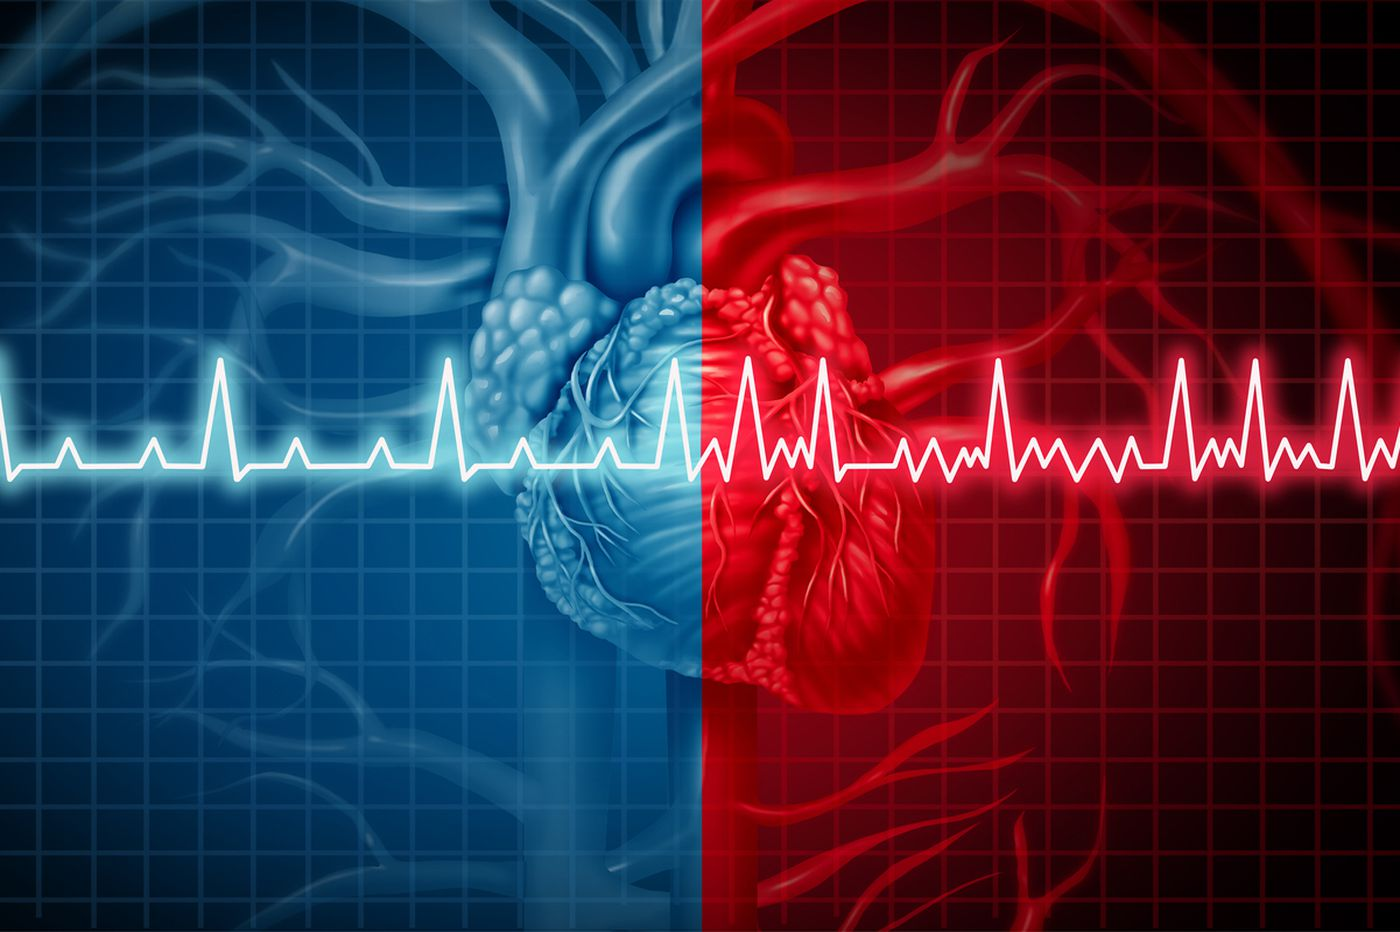 Q&A: Could I have atrial fibrillation and not know it?